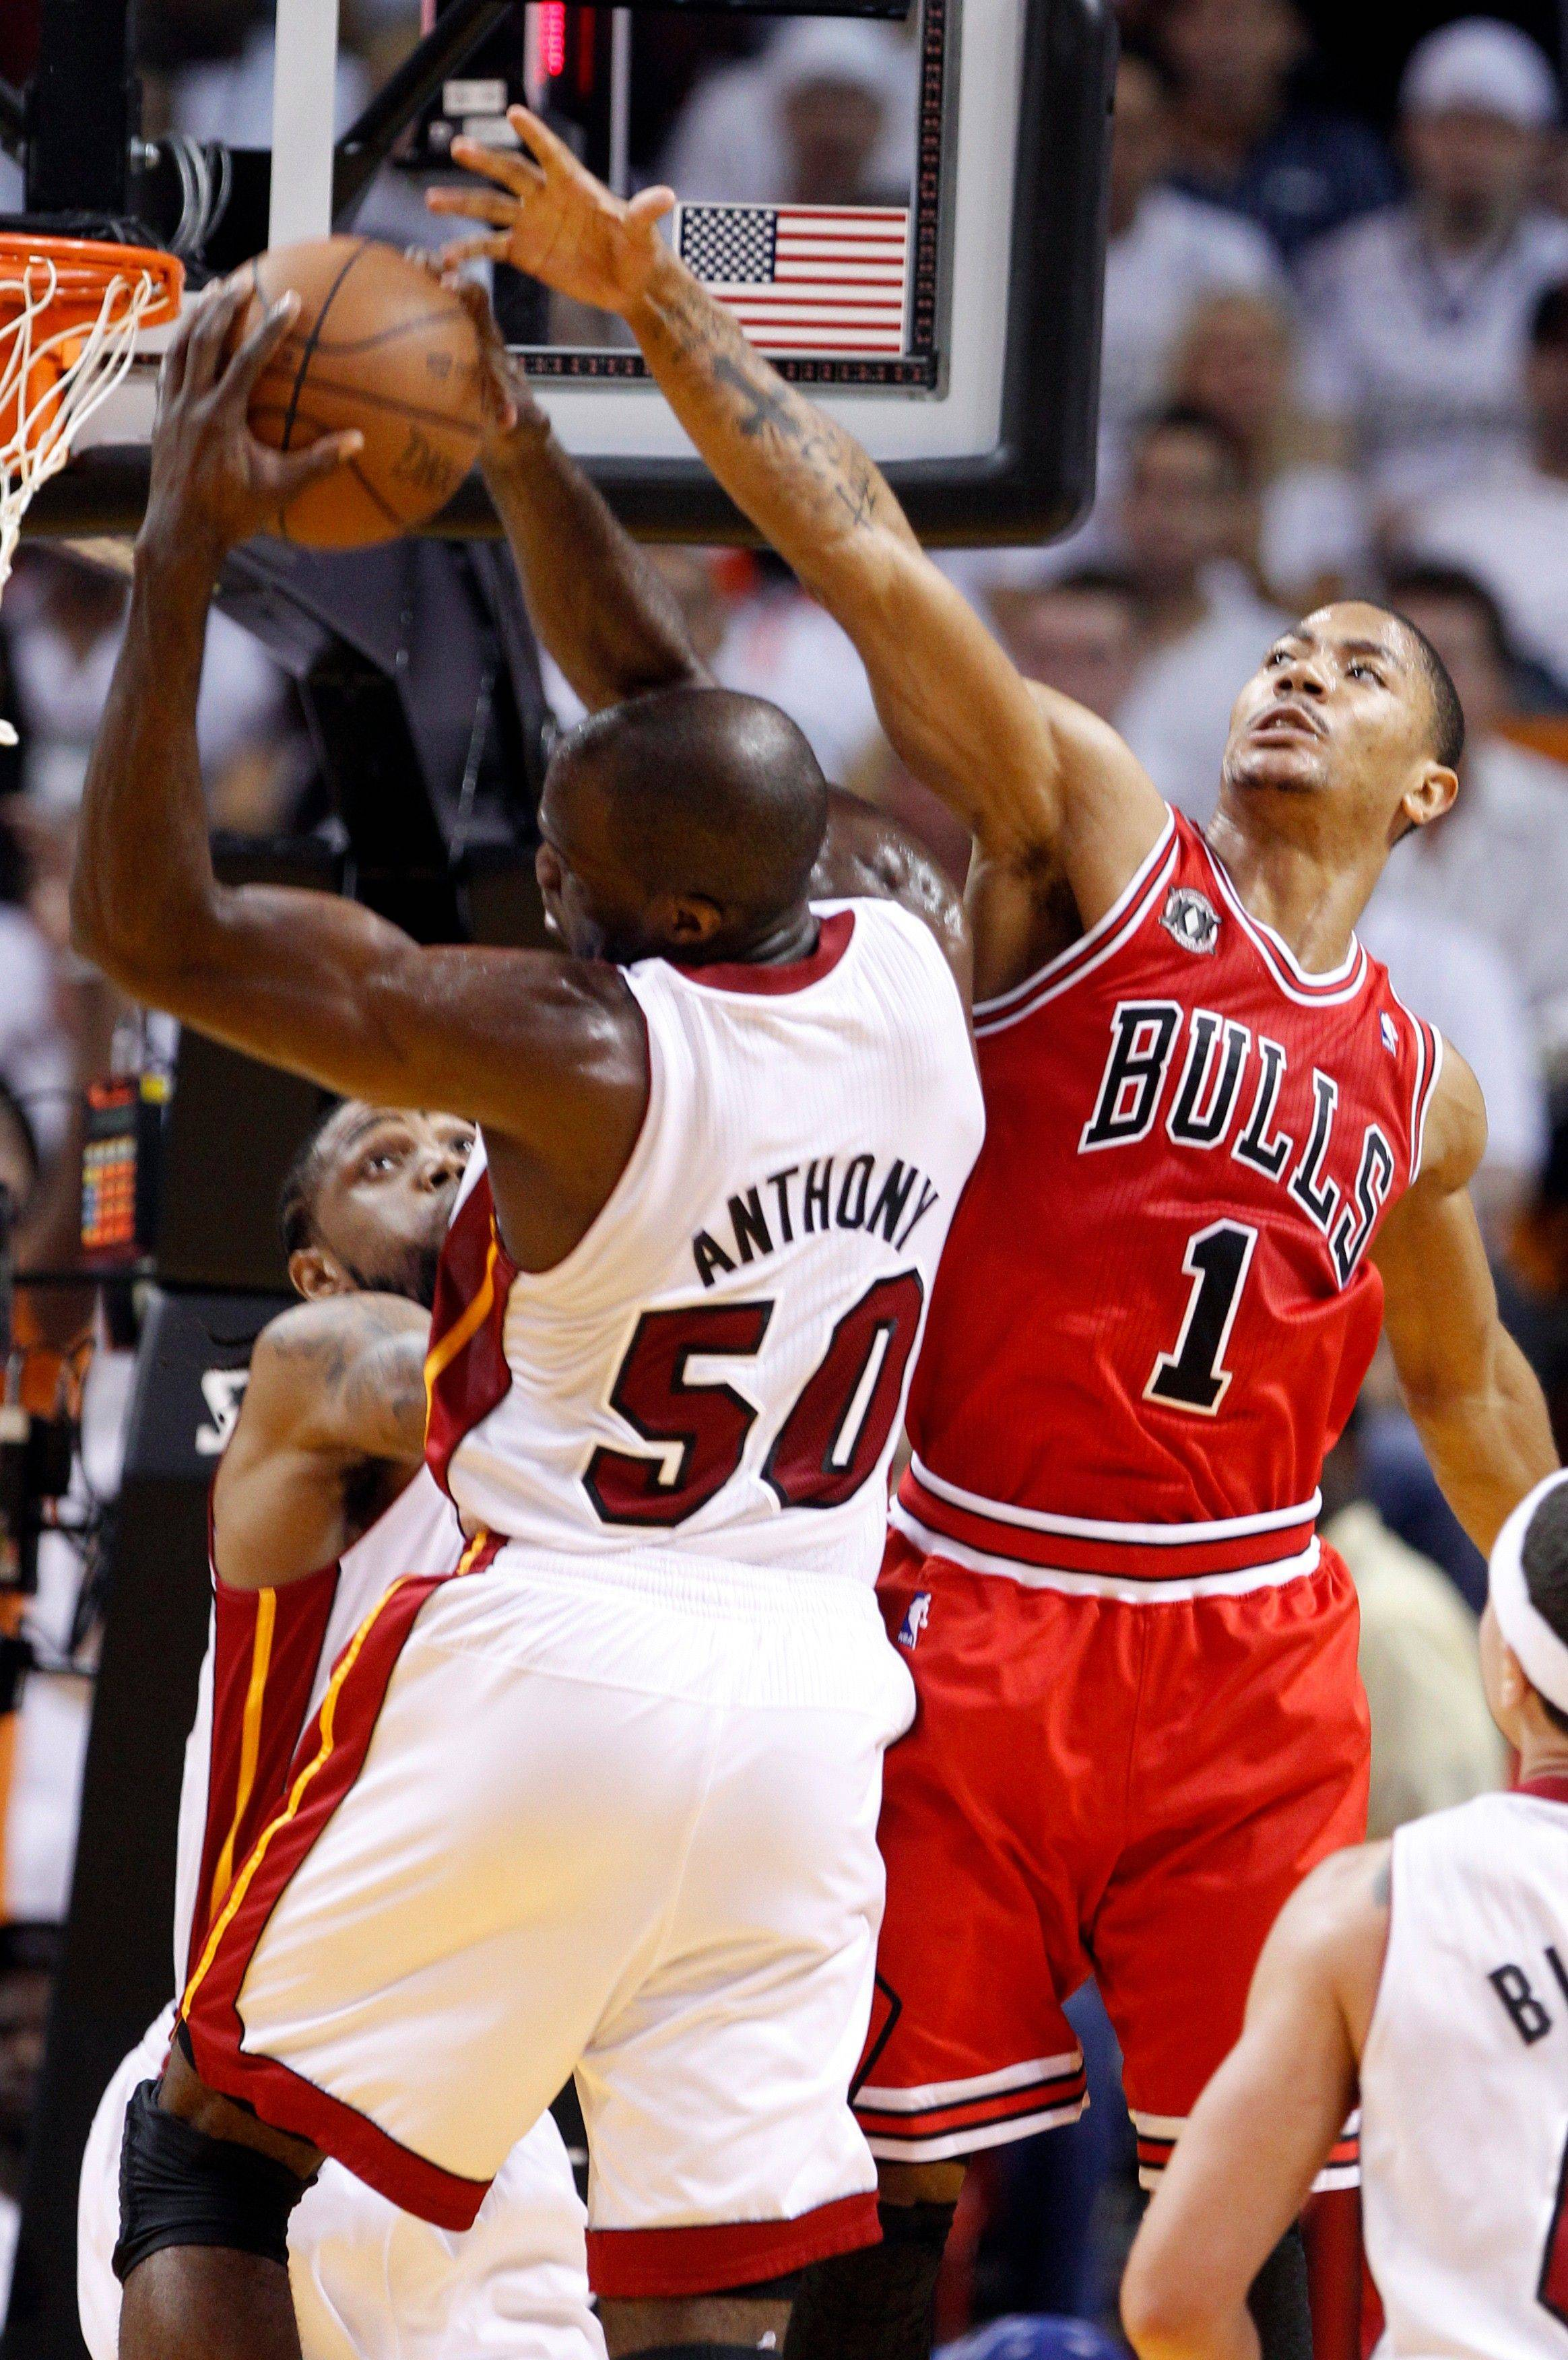 Chicago Bulls's Derrick Rose (1) defends as Miami Heat's Joel Anthony (50) grabs a rebound during the first half of Game 4 of the NBA Eastern Conference finals basketball series in Miami, Tuesday, May 24, 2011.